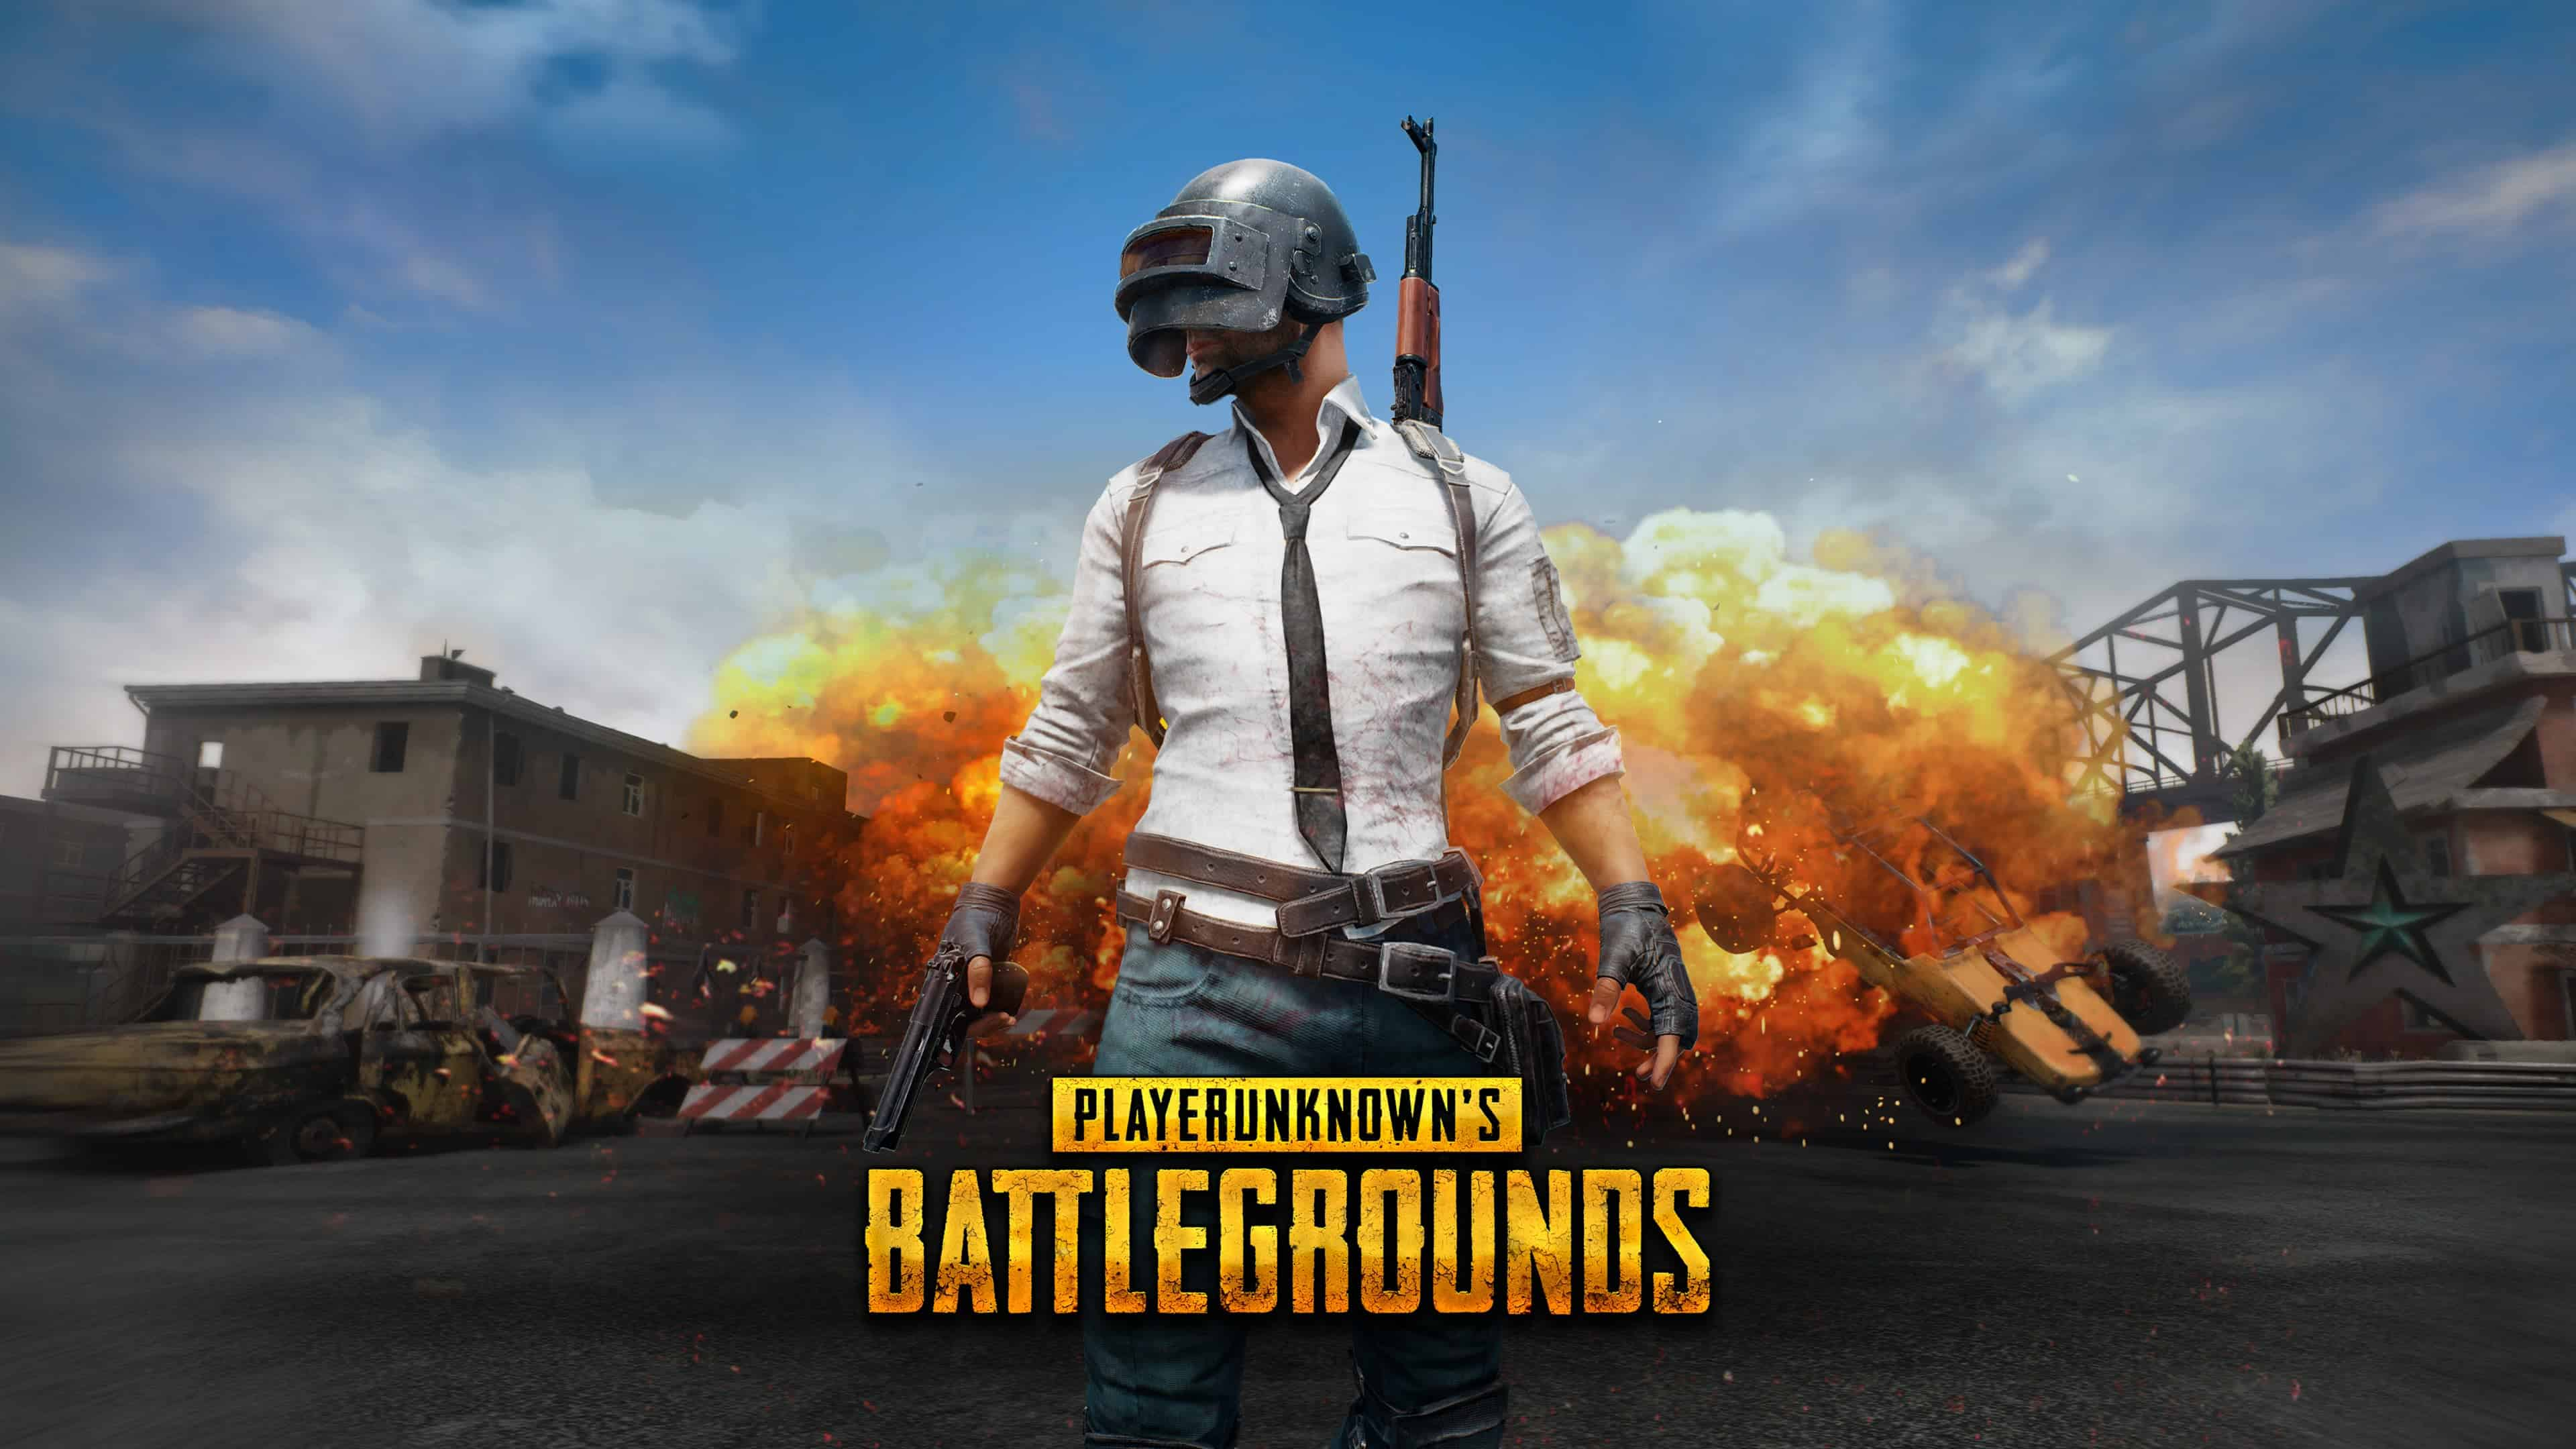 PUBG Player Unknown Battlegrounds Cover UHD 4K Wallpaper